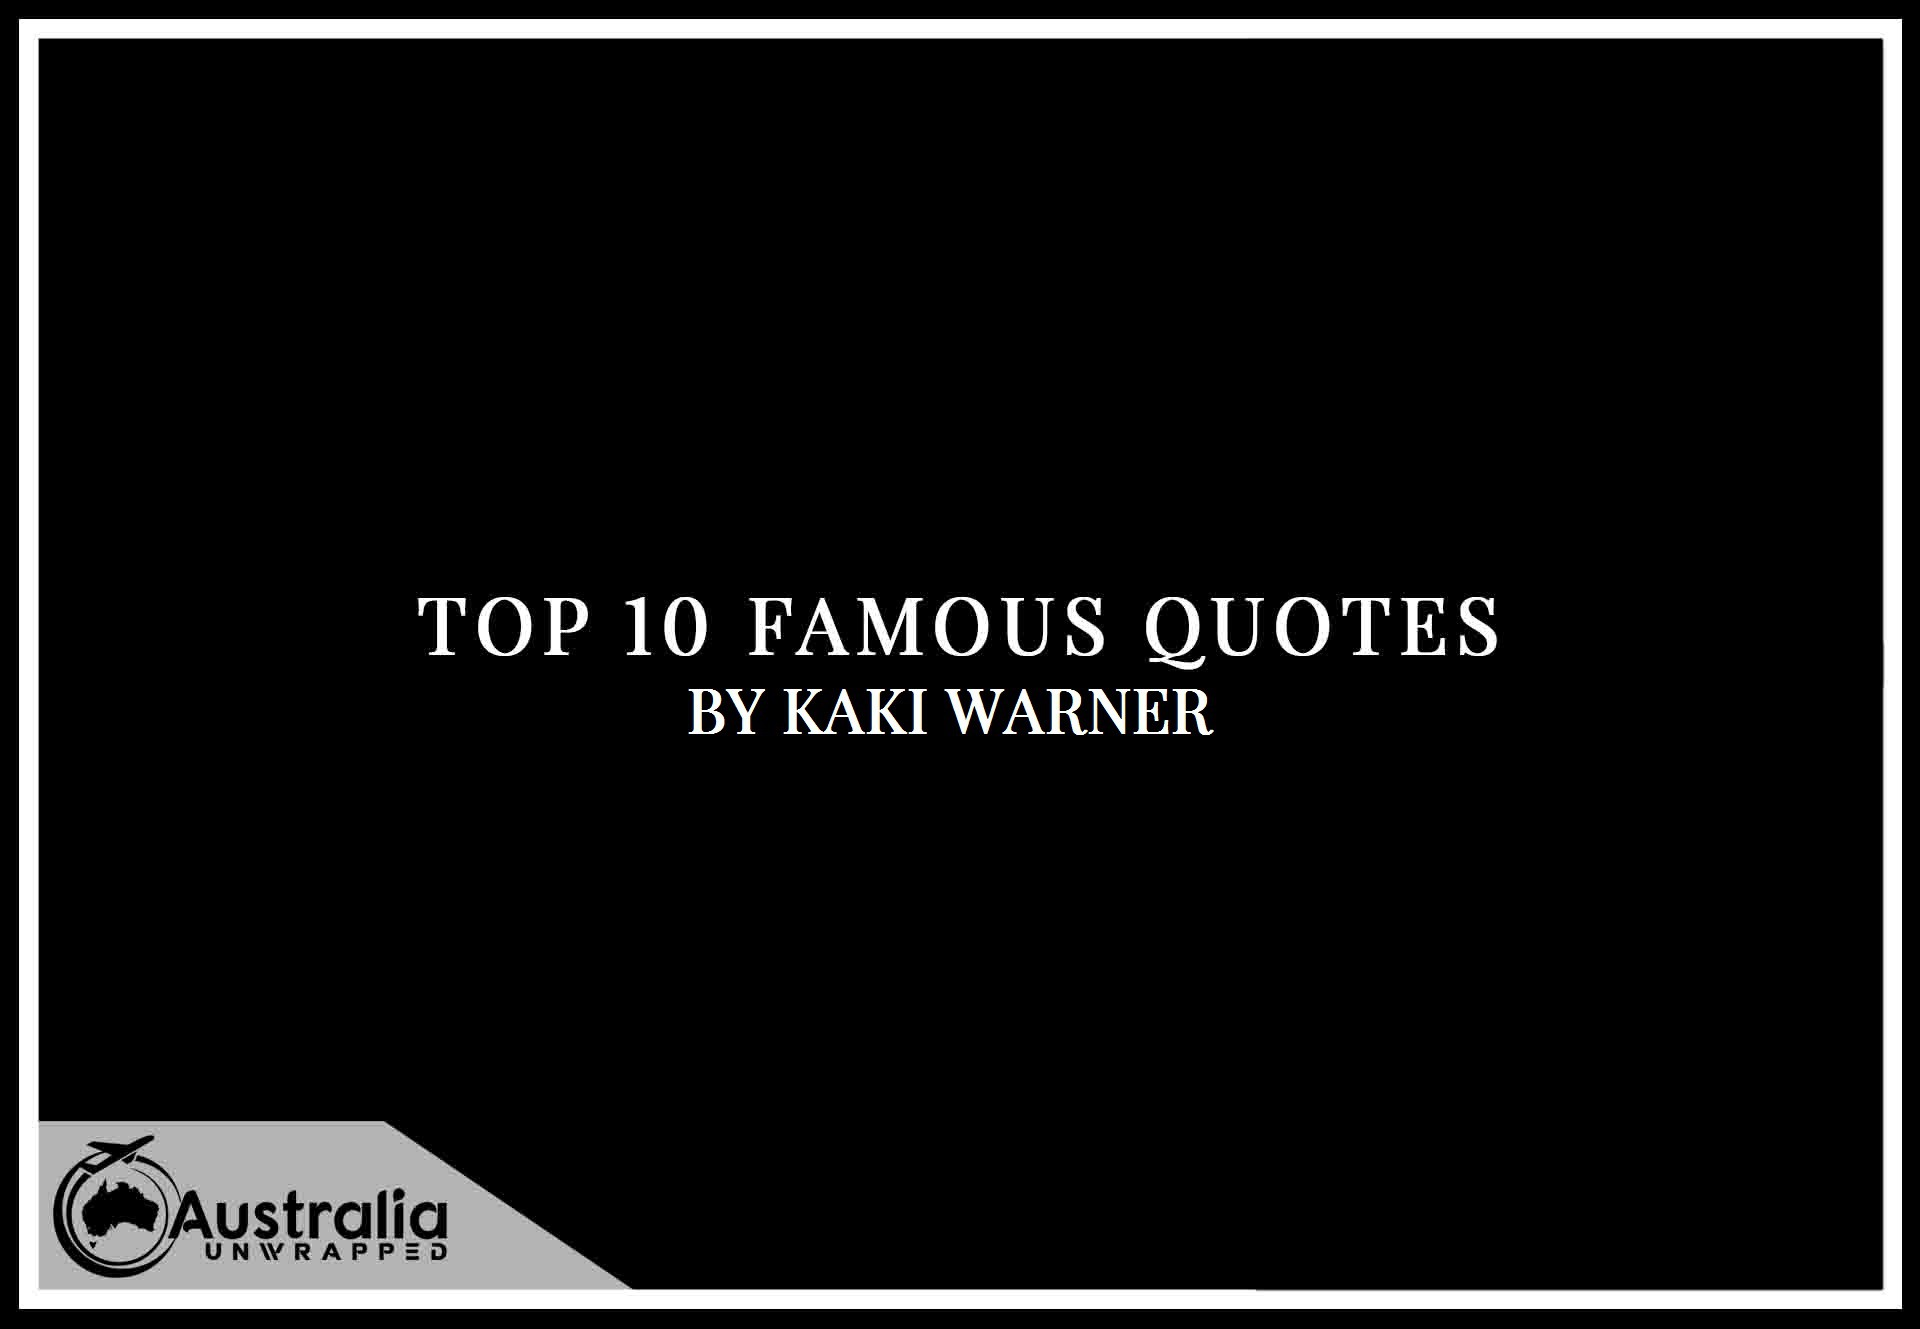 Kaki Warner's Top 10 Popular and Famous Quotes